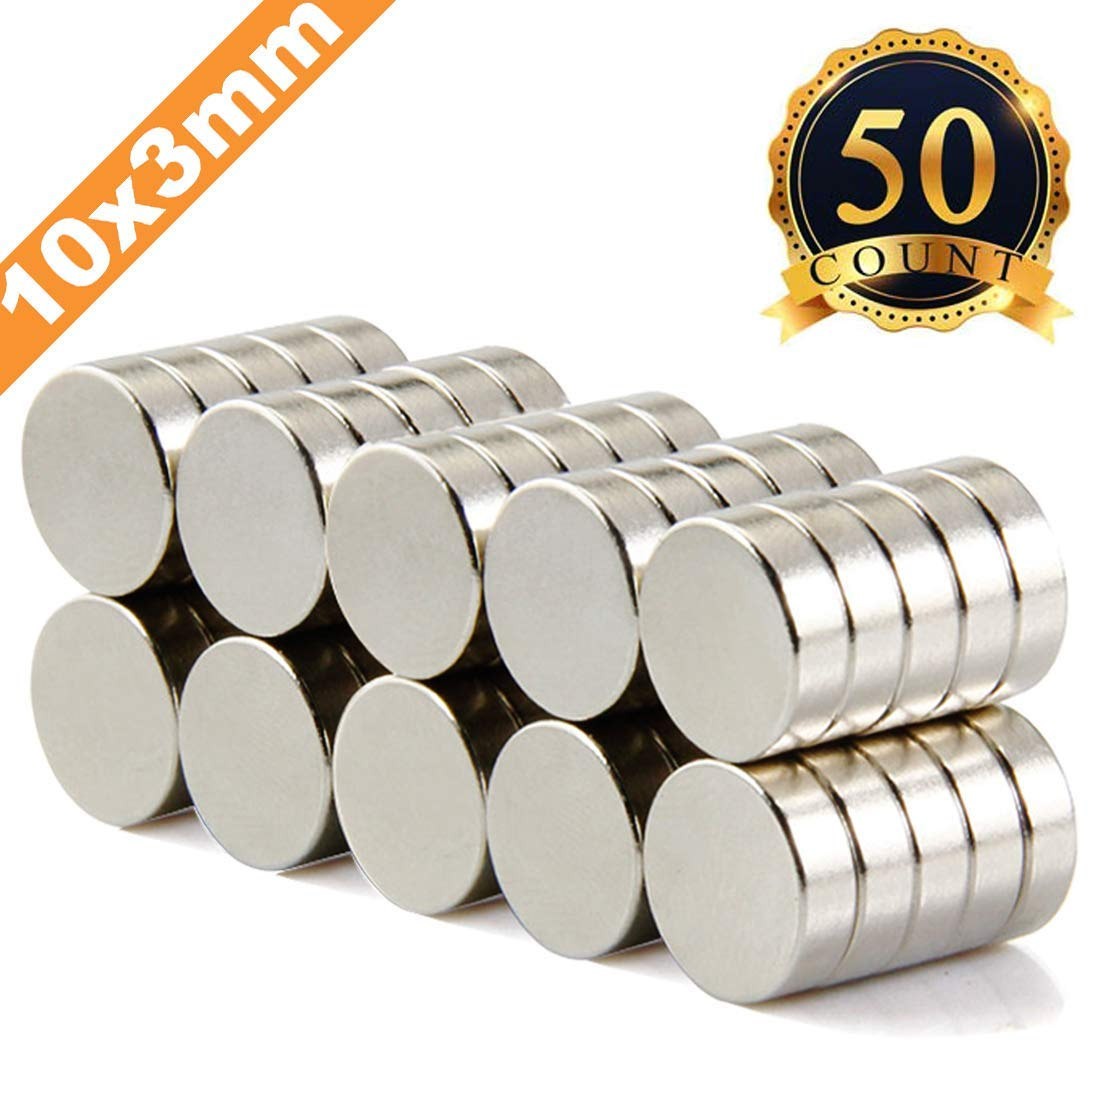 FINDMAG 50Pieces 10X3mm Premium Brushed Nickel Pawn Style Magnetic Push Pins,Fridge Magnets, Office Magnets, Dry Erase Board Magnetic pins, Whiteboard Magnets,Refrigerator Magnets